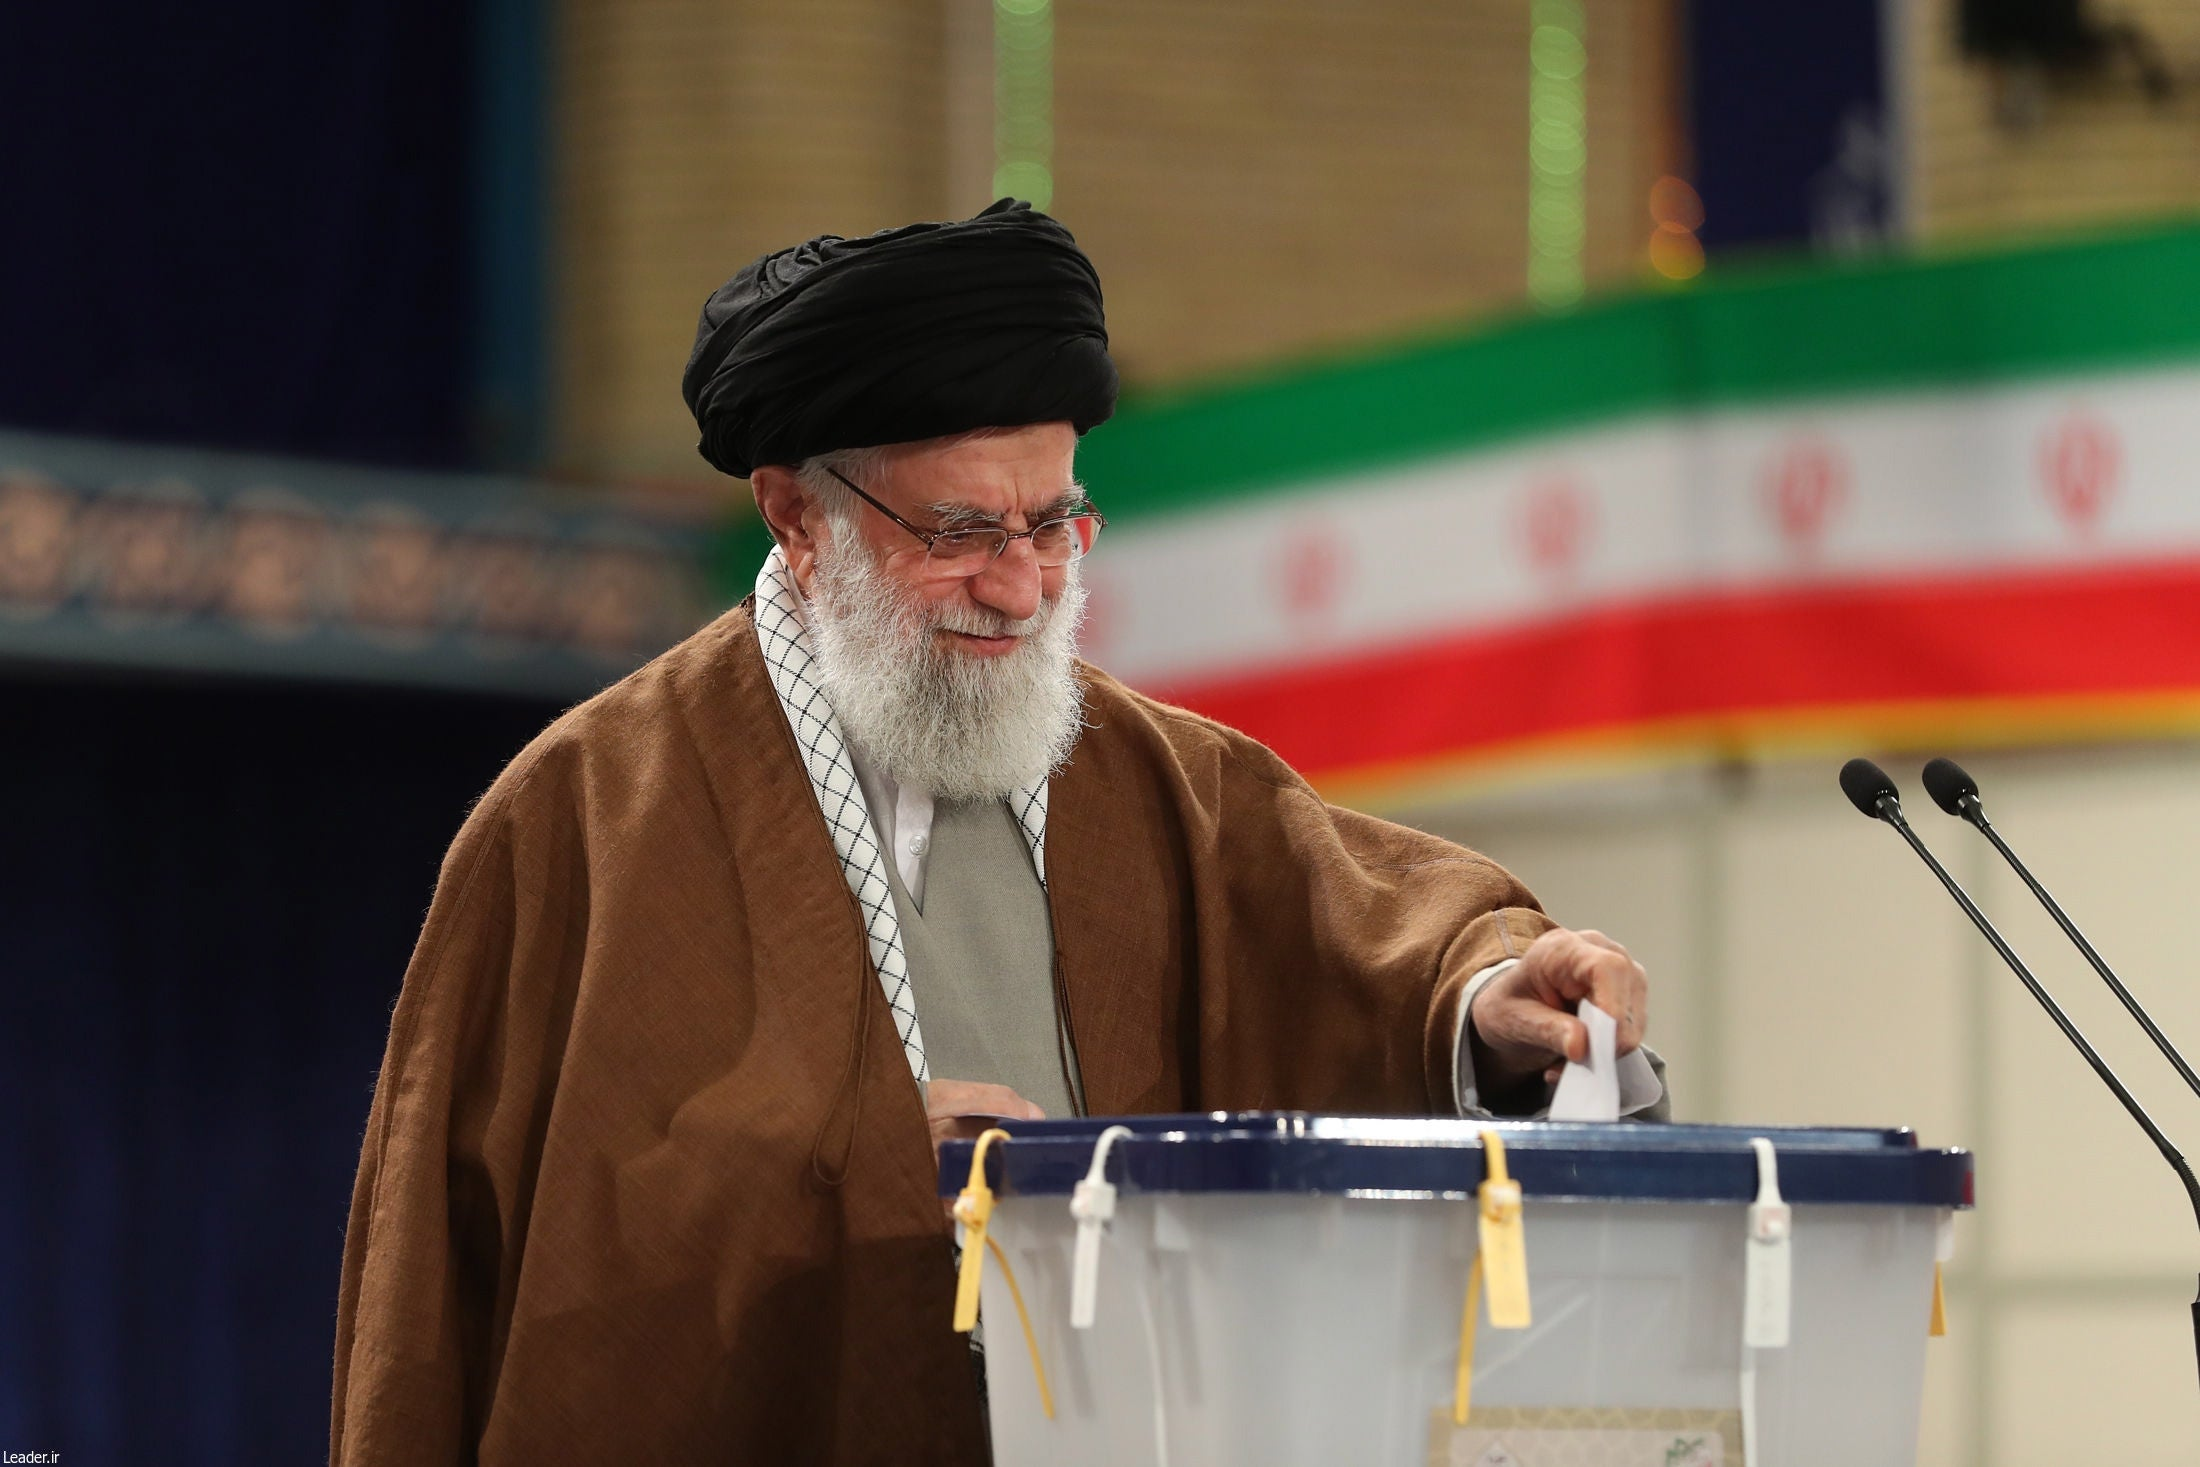 Iran elections expected to end with hardline victory for nationalists and religious conservatives